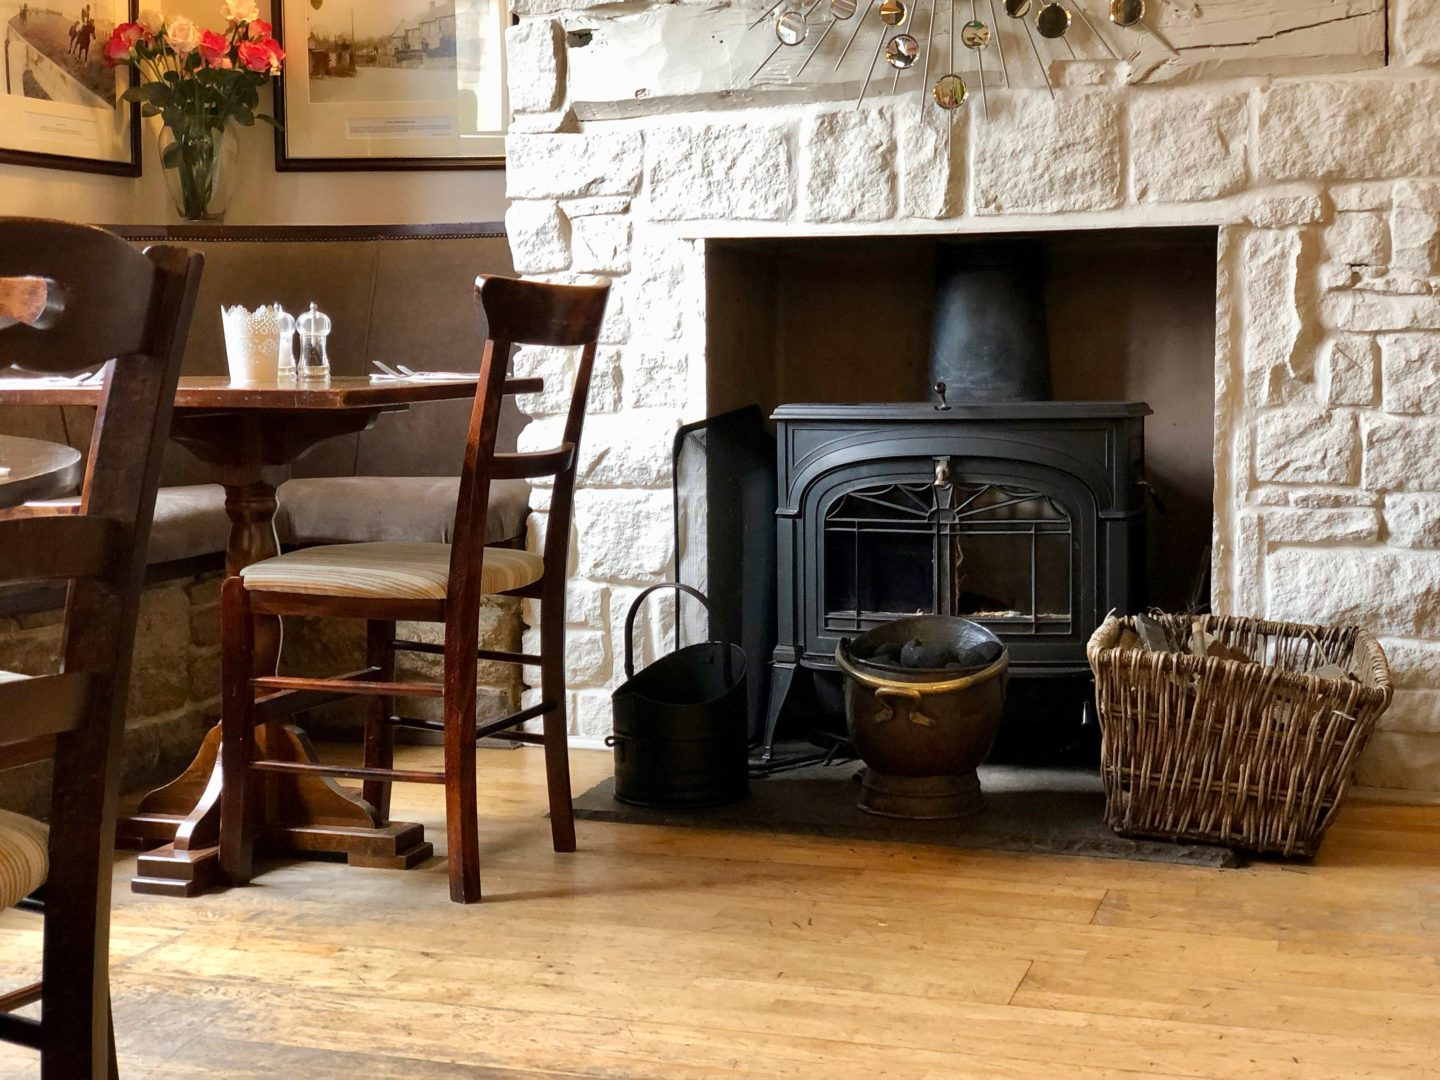 AD: Landal Sandybrook Peak District family review - a relaxing autumnal long weekend break. Rose and Crown, Mayfield